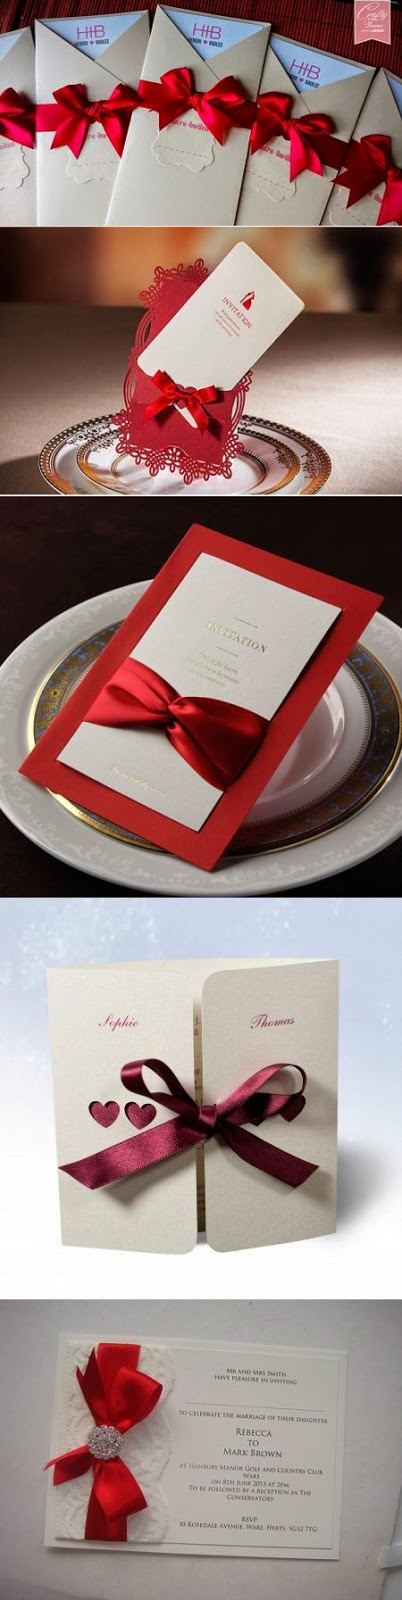 wedding invitations with red ribbons